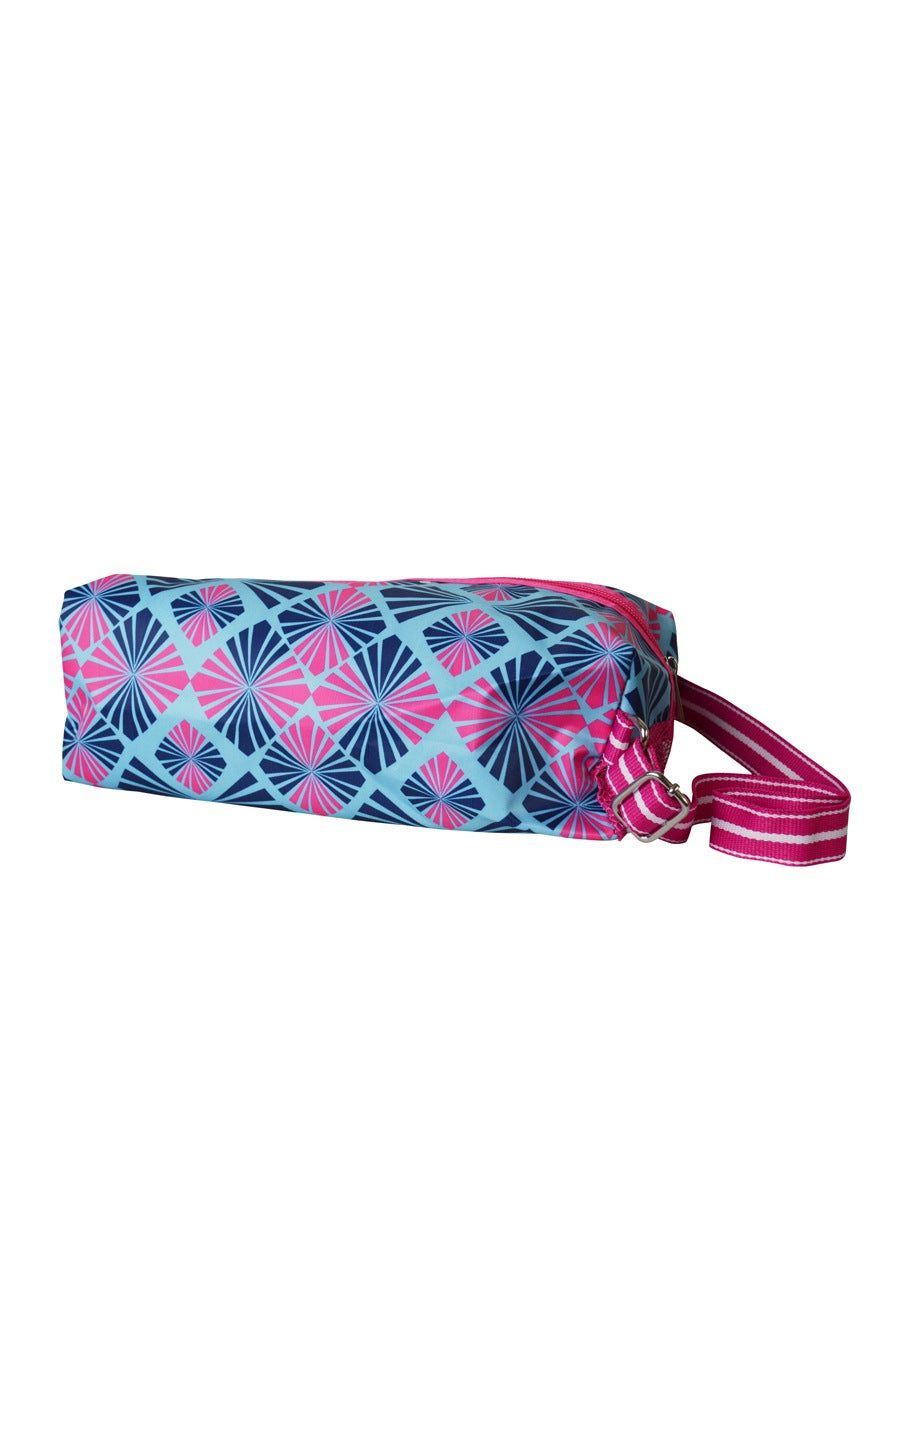 Summer Rays Athletic Shoe Duffel